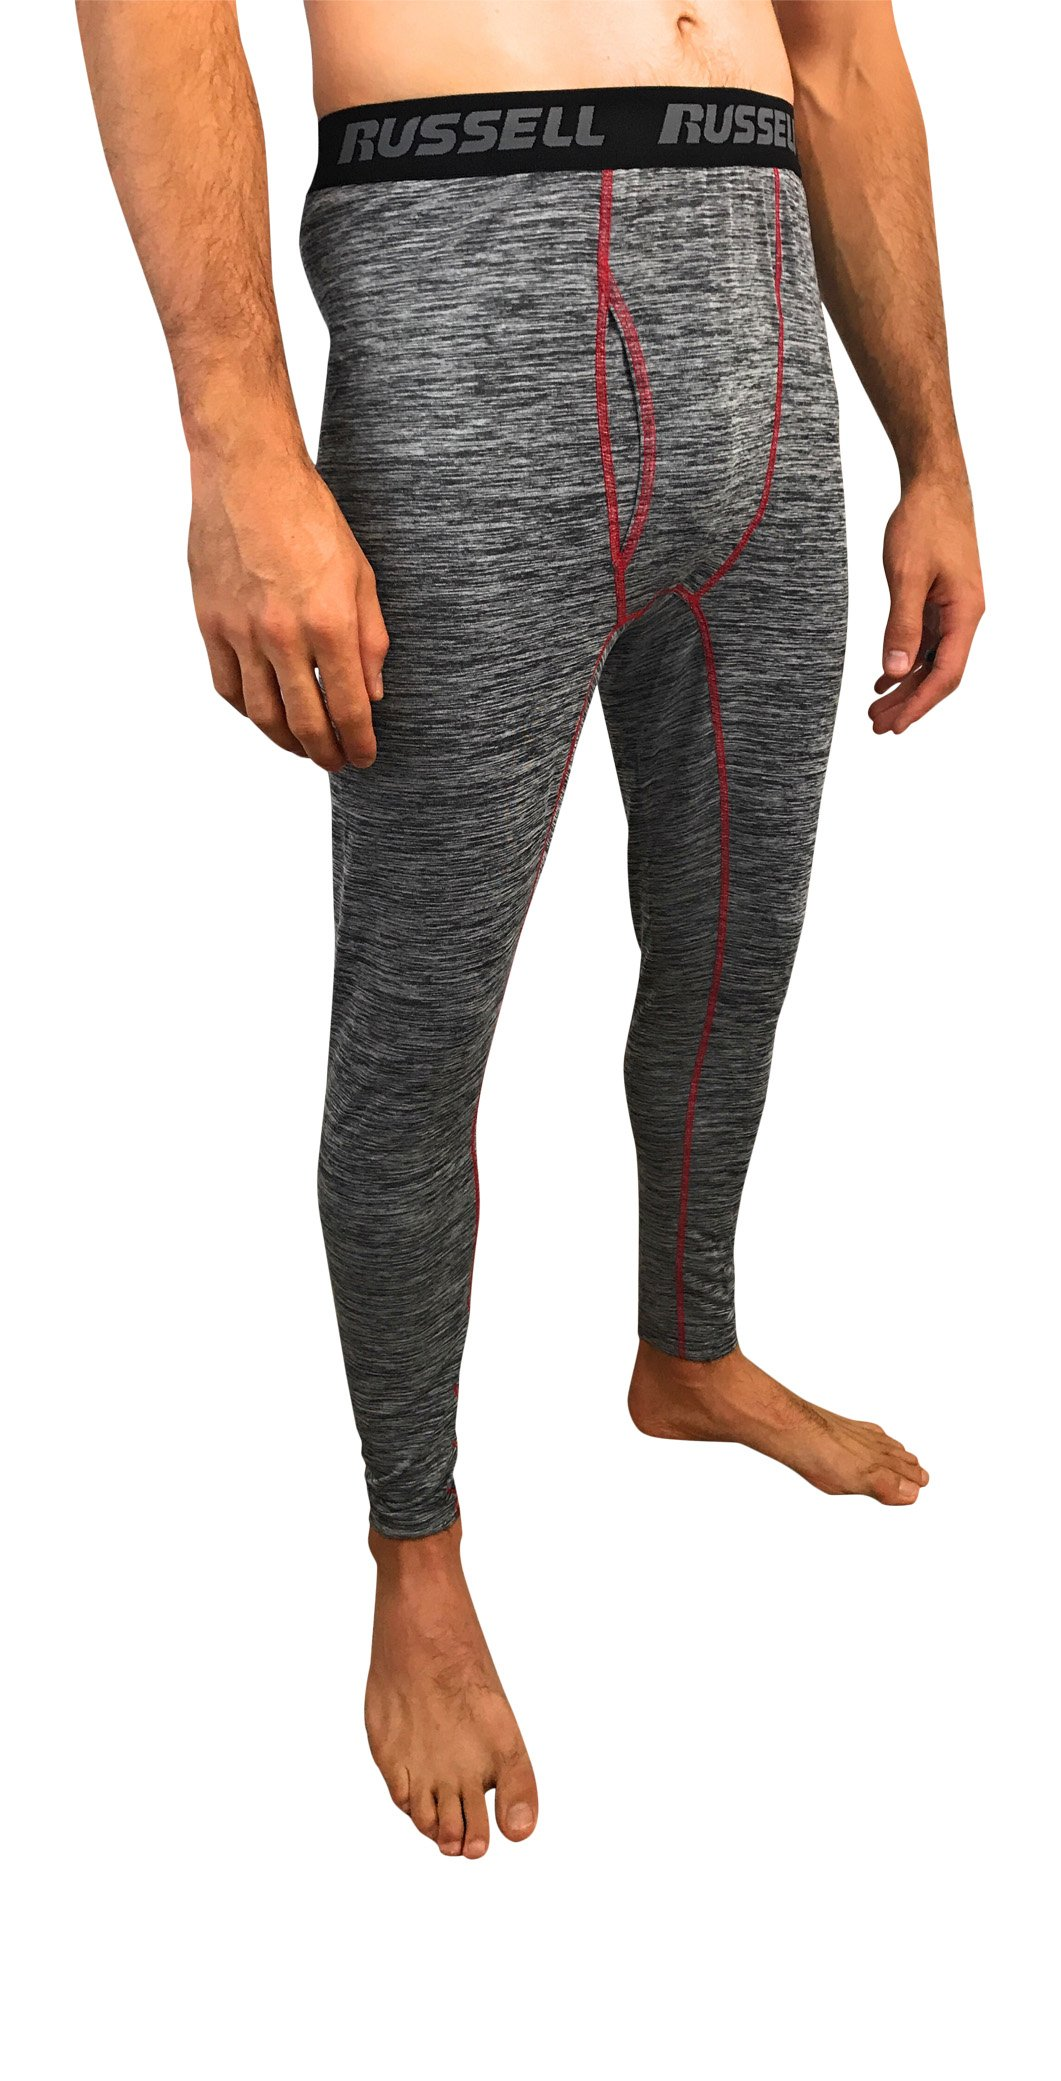 Russell Men's Performance Active Baselayer Thermal Pant / Bottom (Large / 36-38, Grey / Red) by Russell Athletic